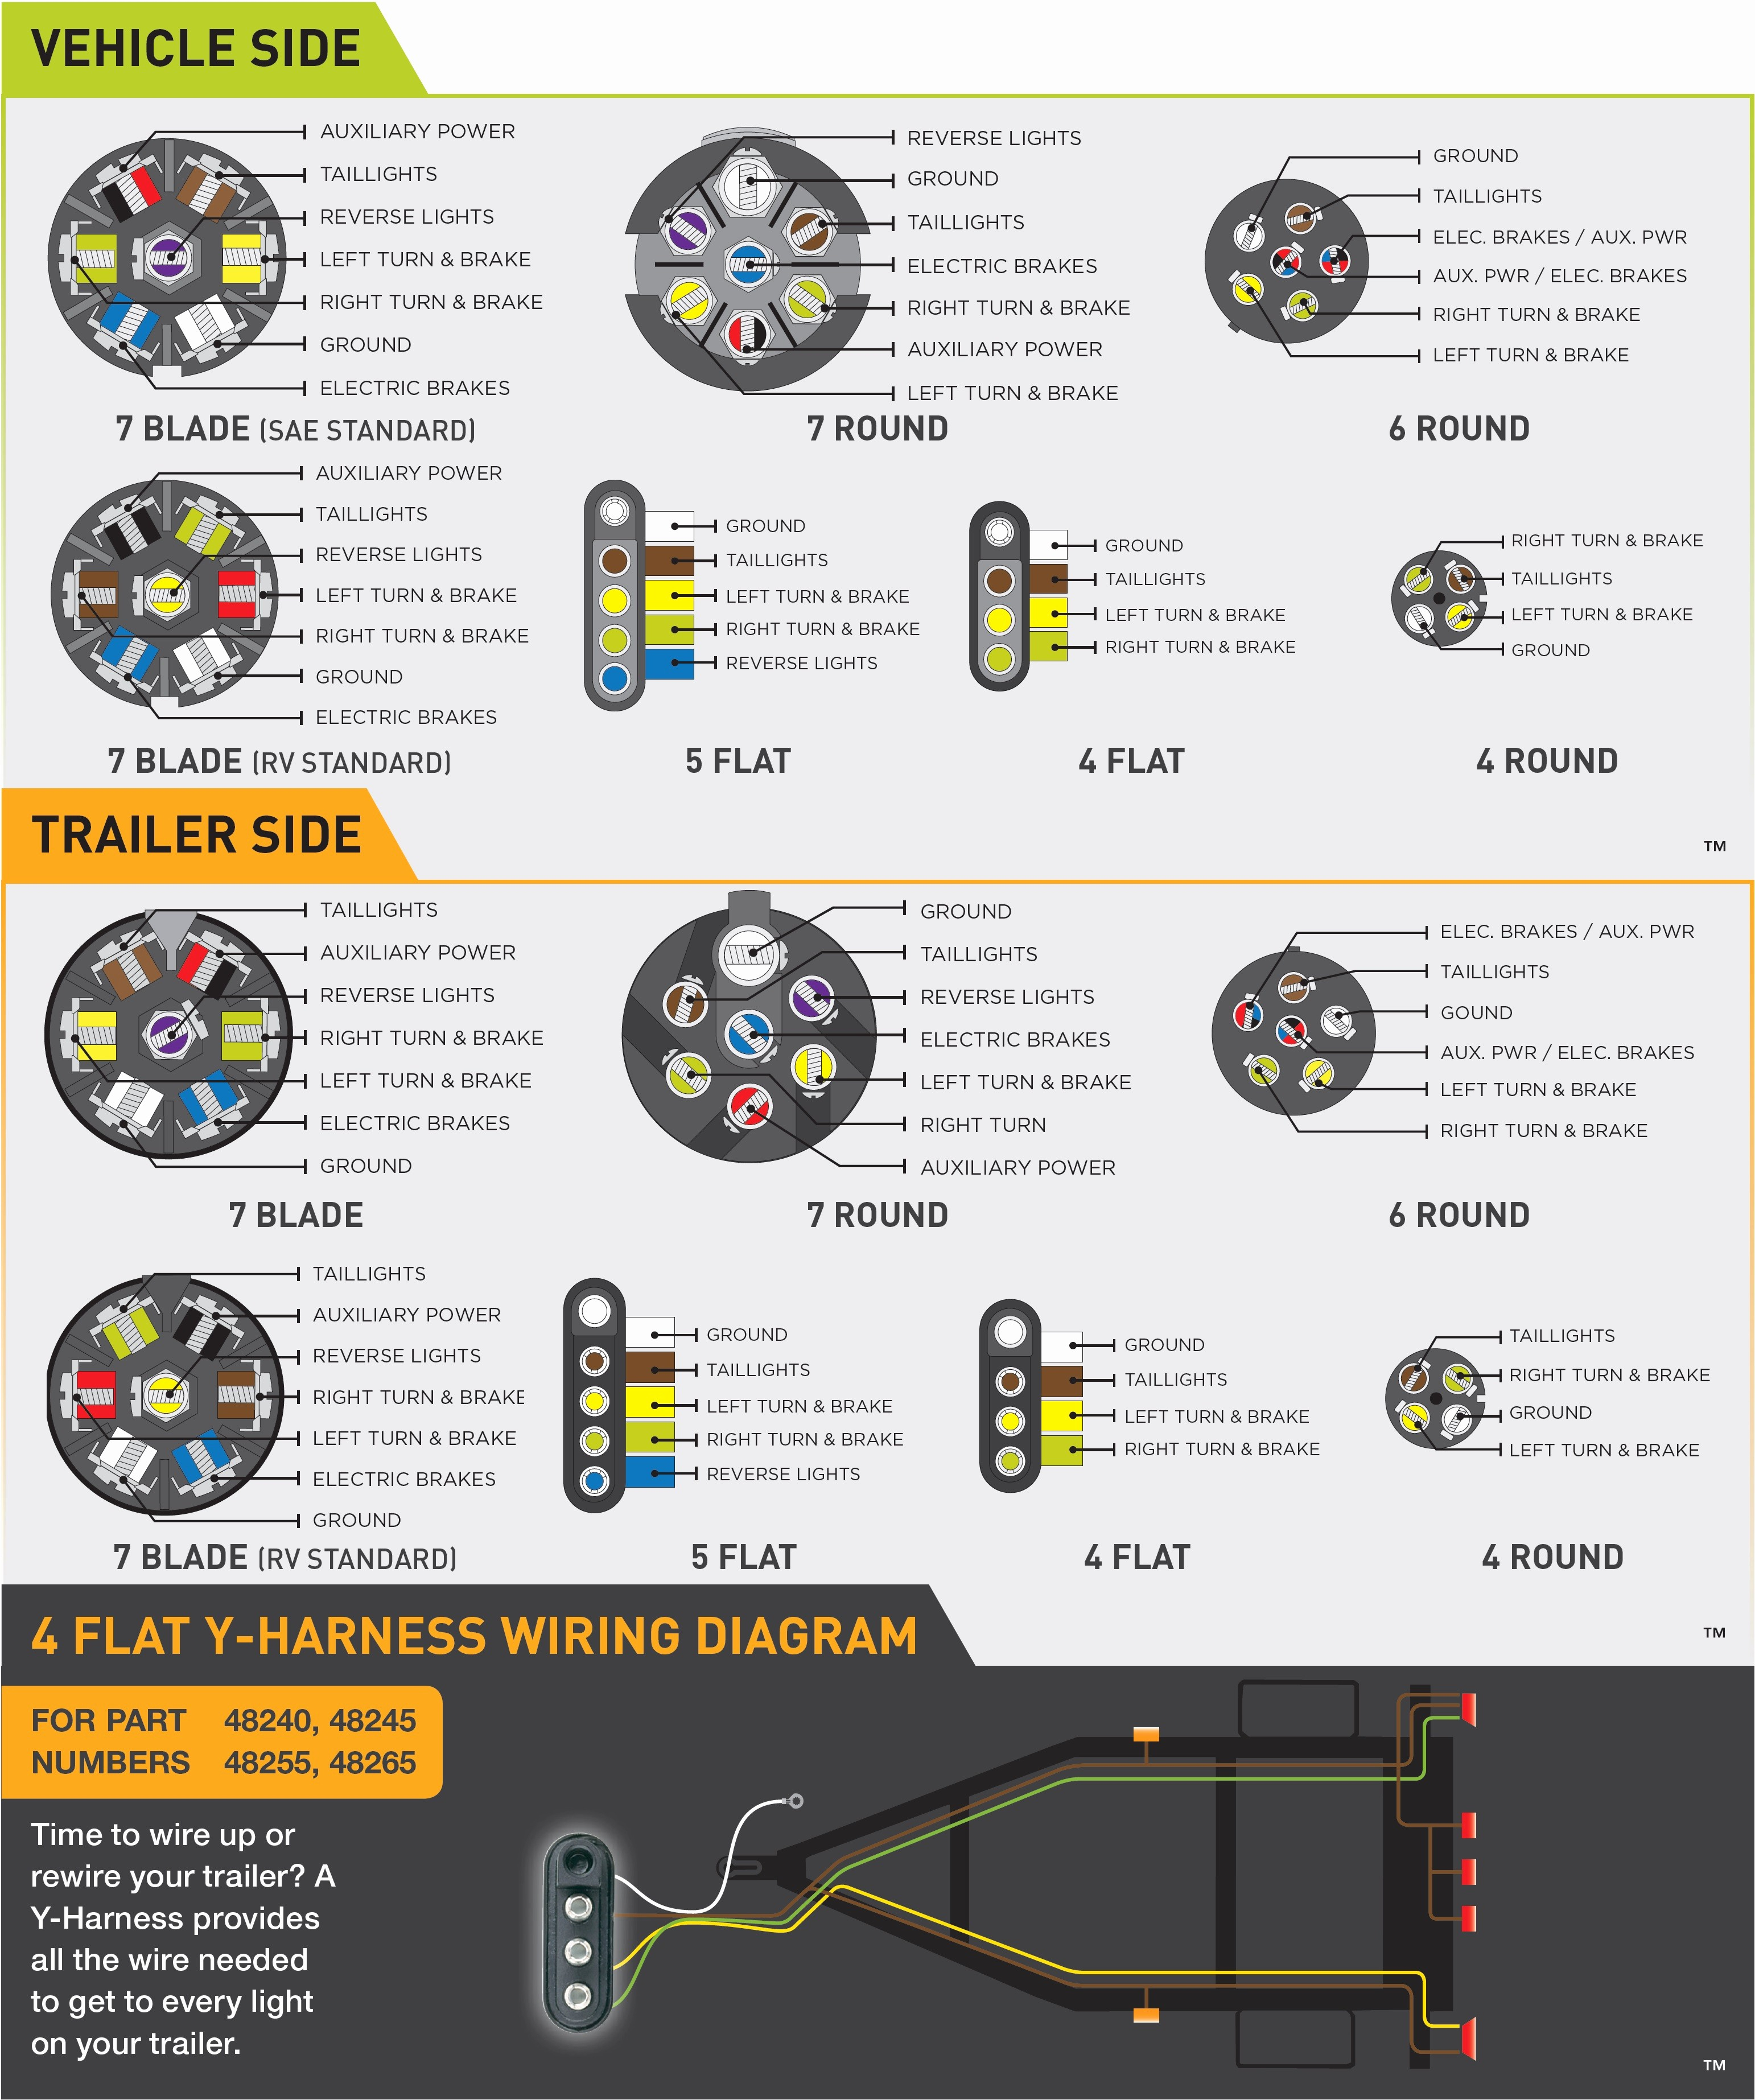 7 blade to 4 flat adapter wiring diagram Collection-Wiring Diagram for Flat Trailer Plug Best 7 Blade Wiring Diagram Hopkins Trailer and Groun Breaking 19-i